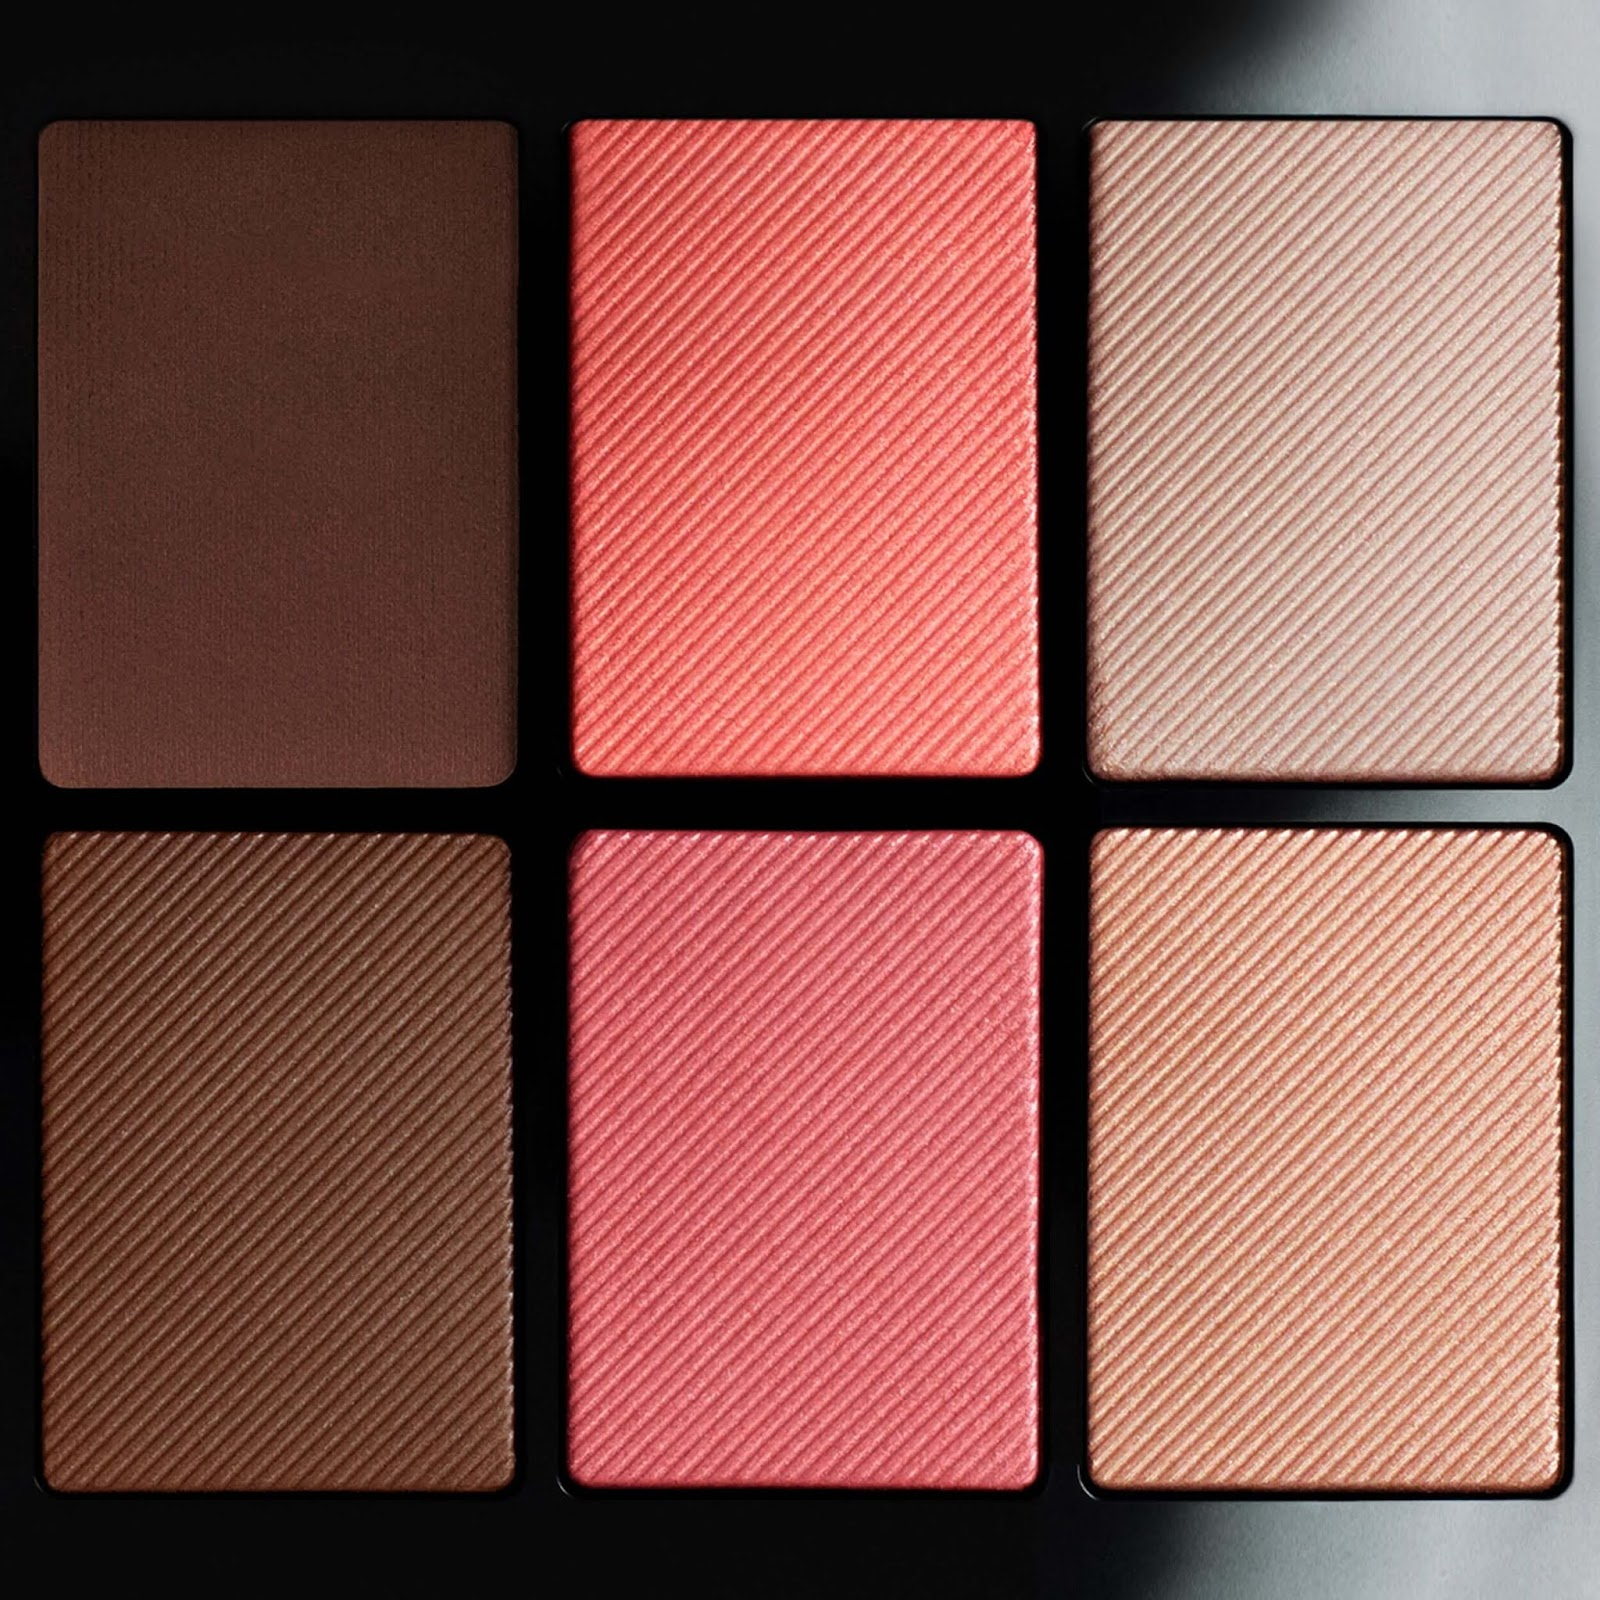 Burberry Essentials Glow Palette